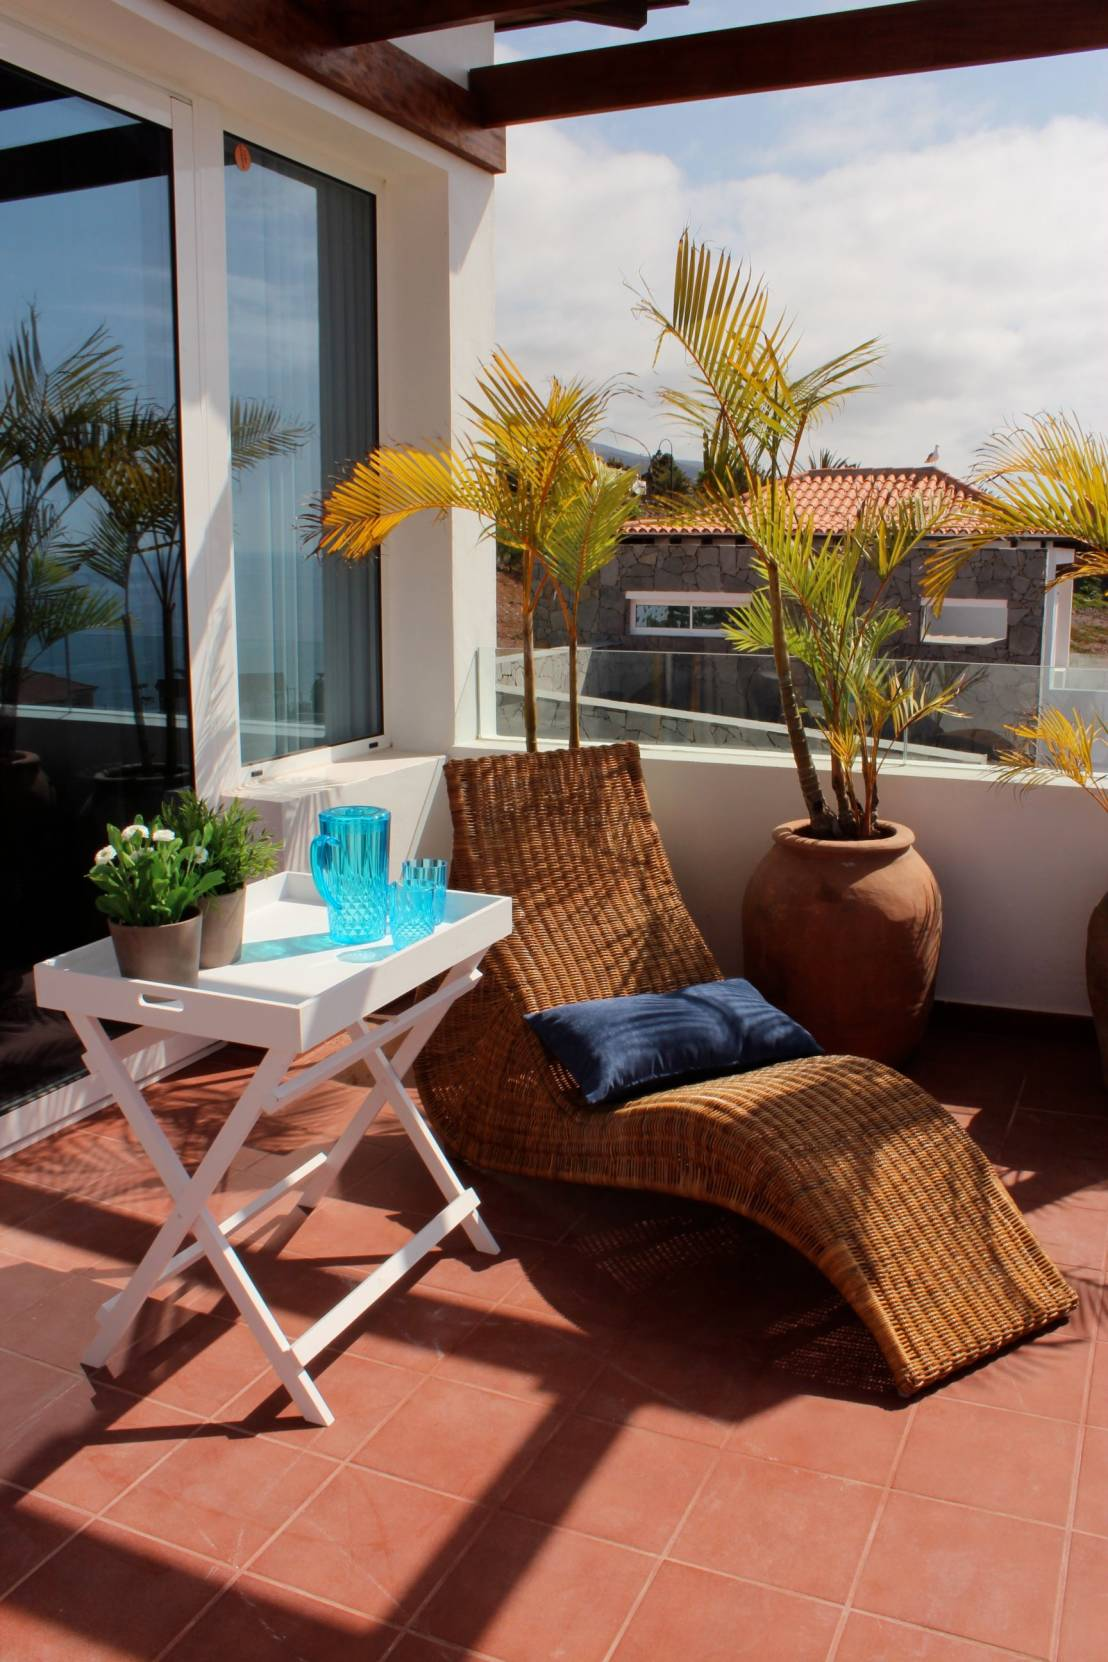 7 grandes ideas para balcones y terrazas peque as for Ideas de terrazas para casas